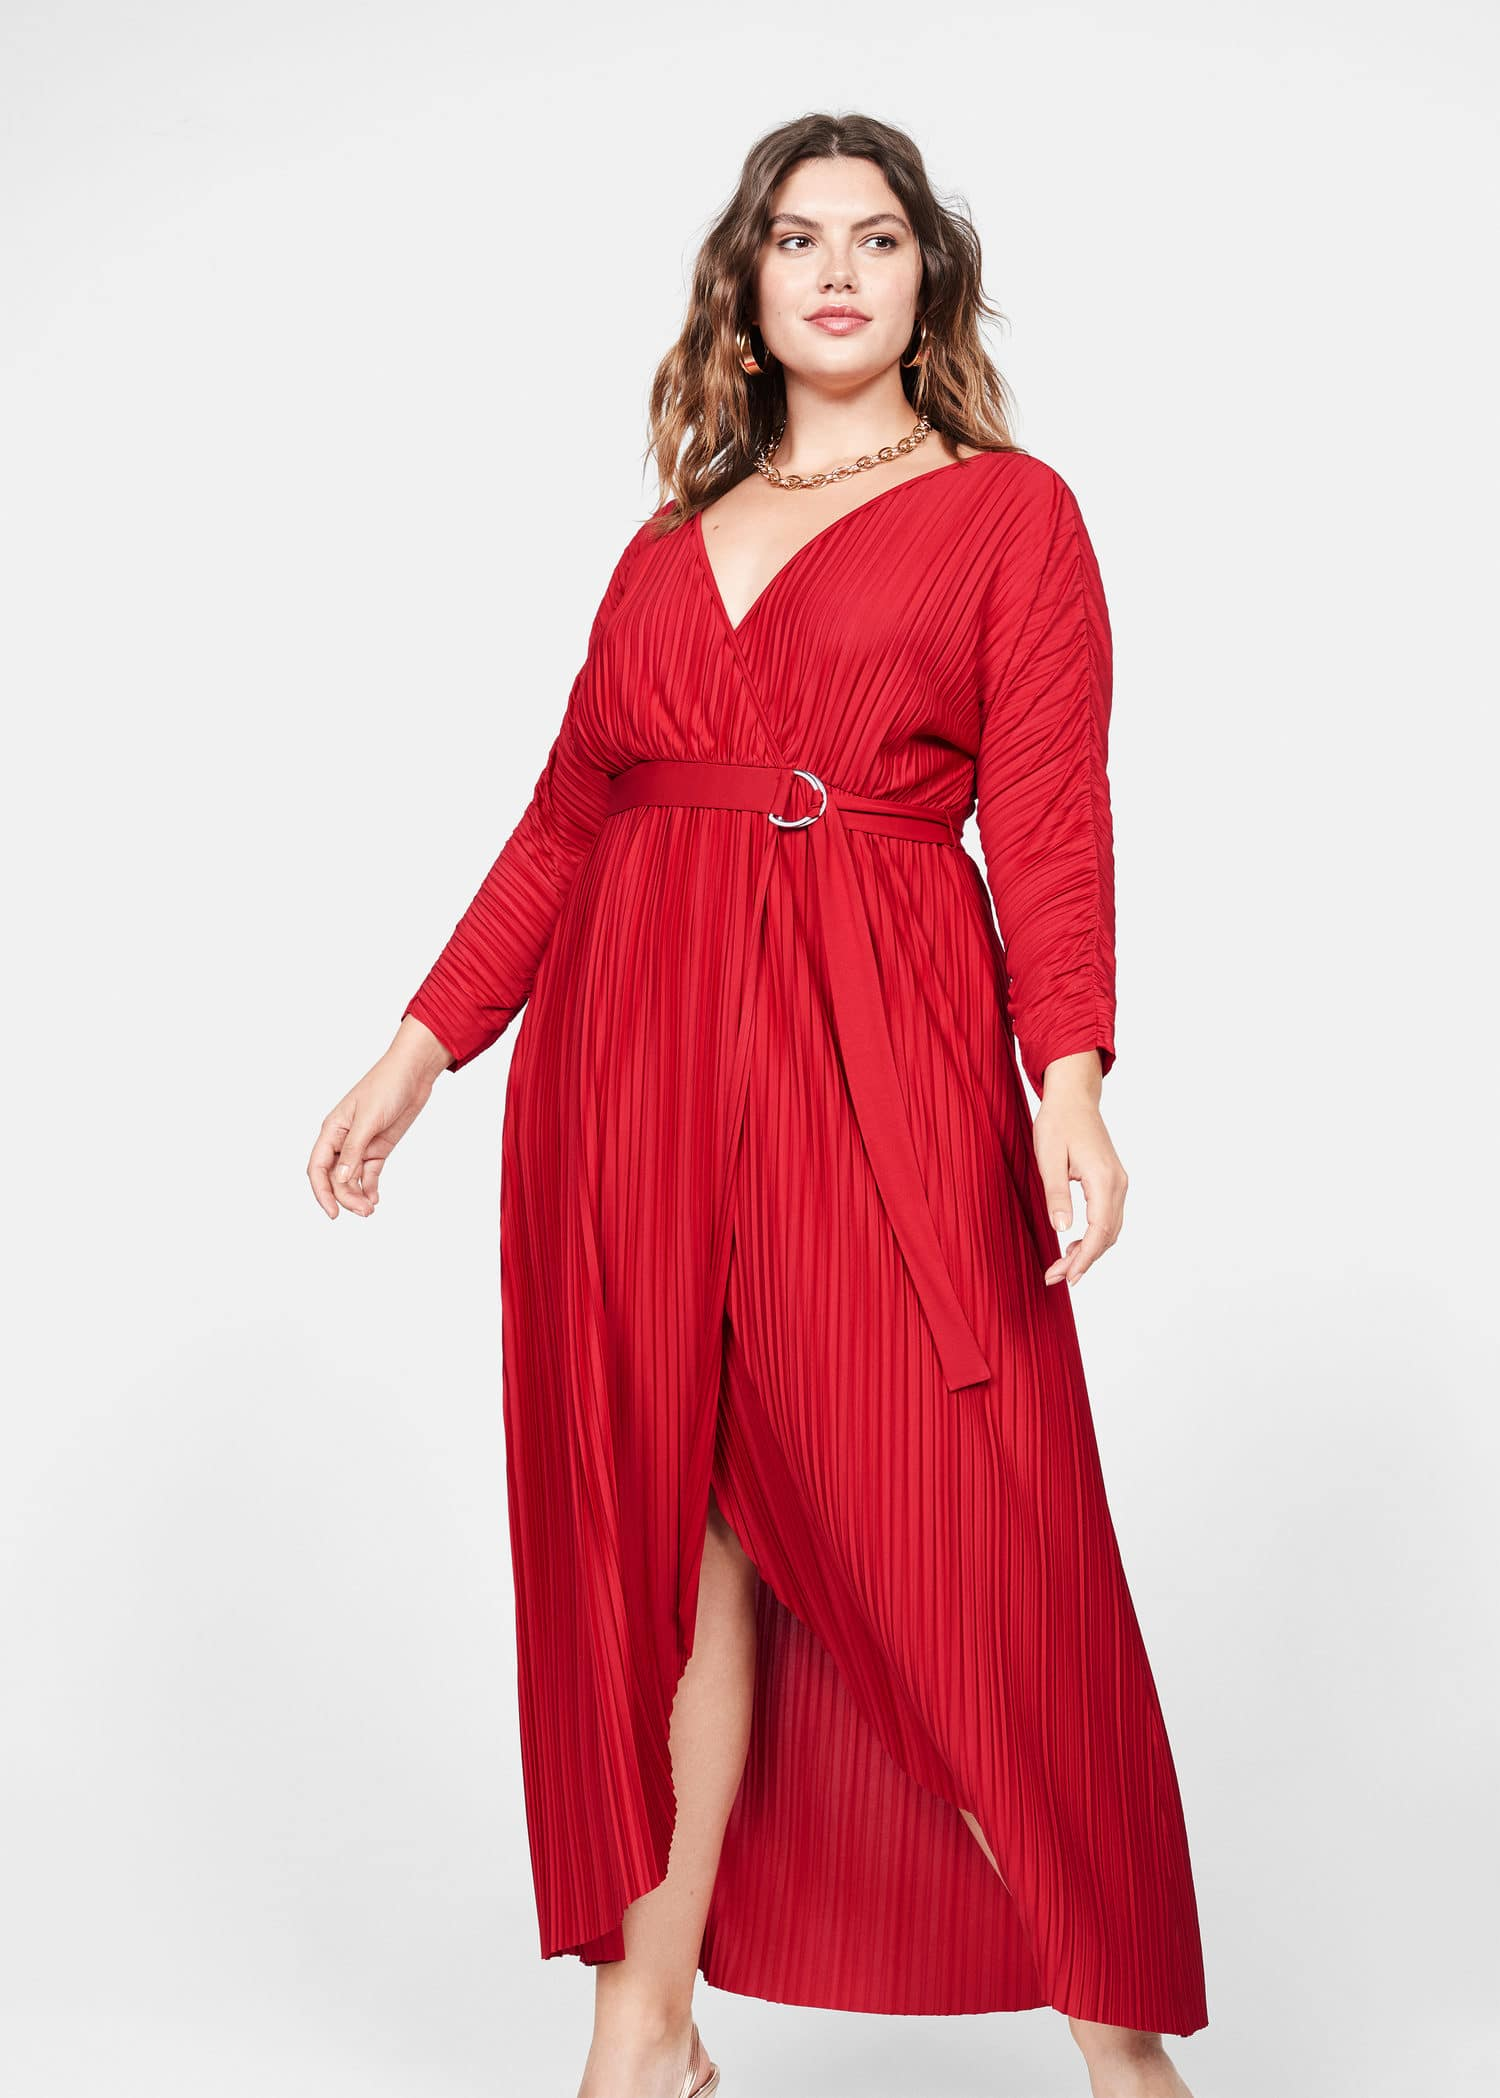 Plus size dress for christmas party